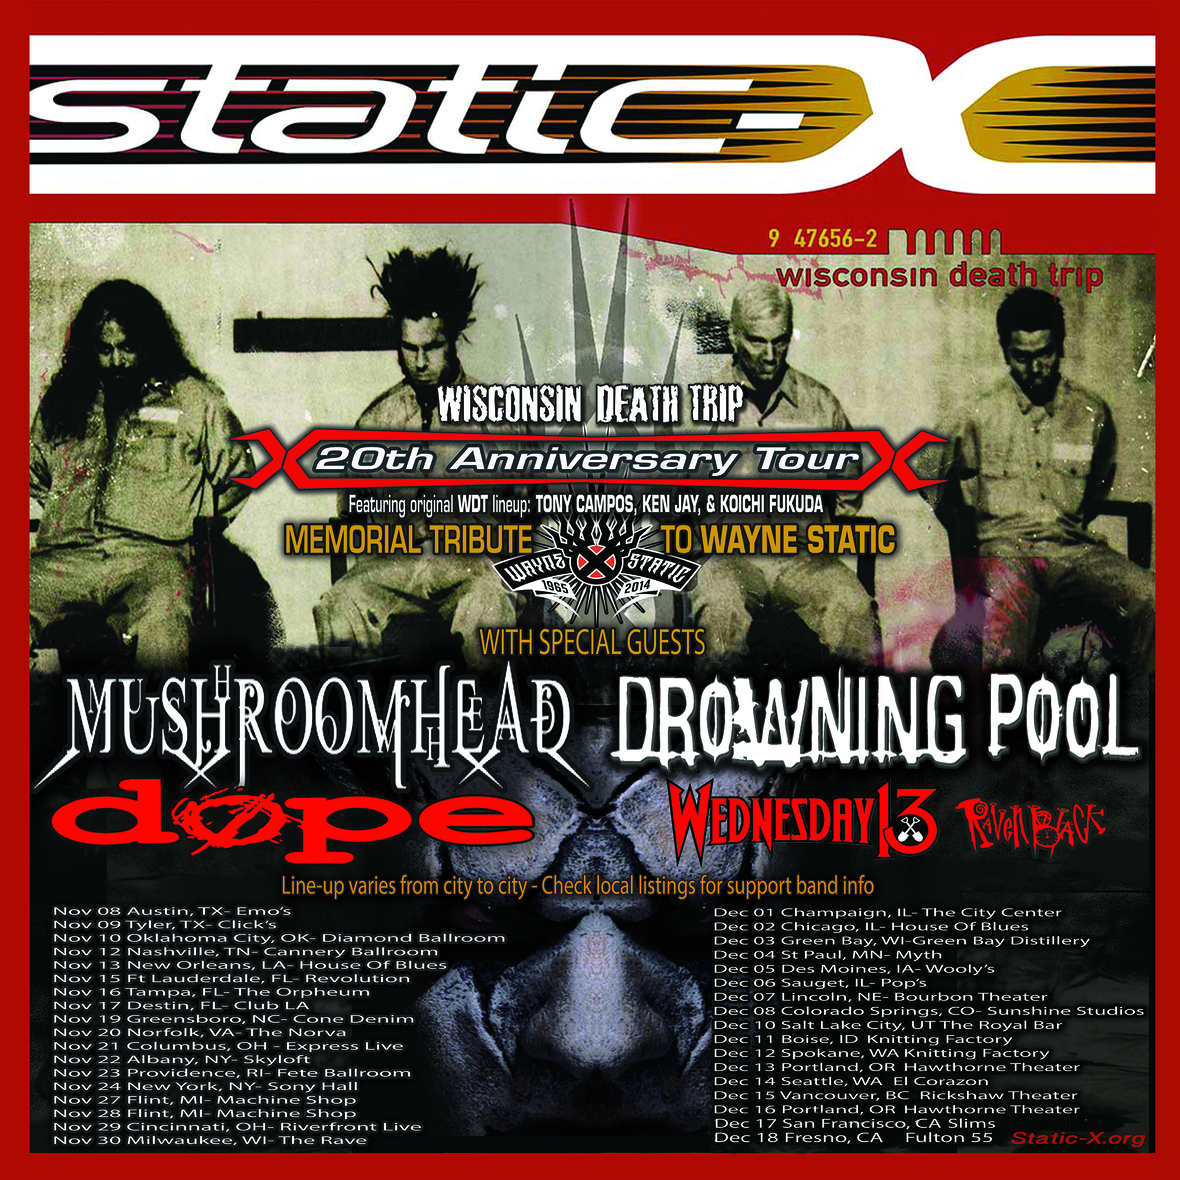 STATIC-X WDT TOUR ADMAT FALL ALL BANDS ALL DATES